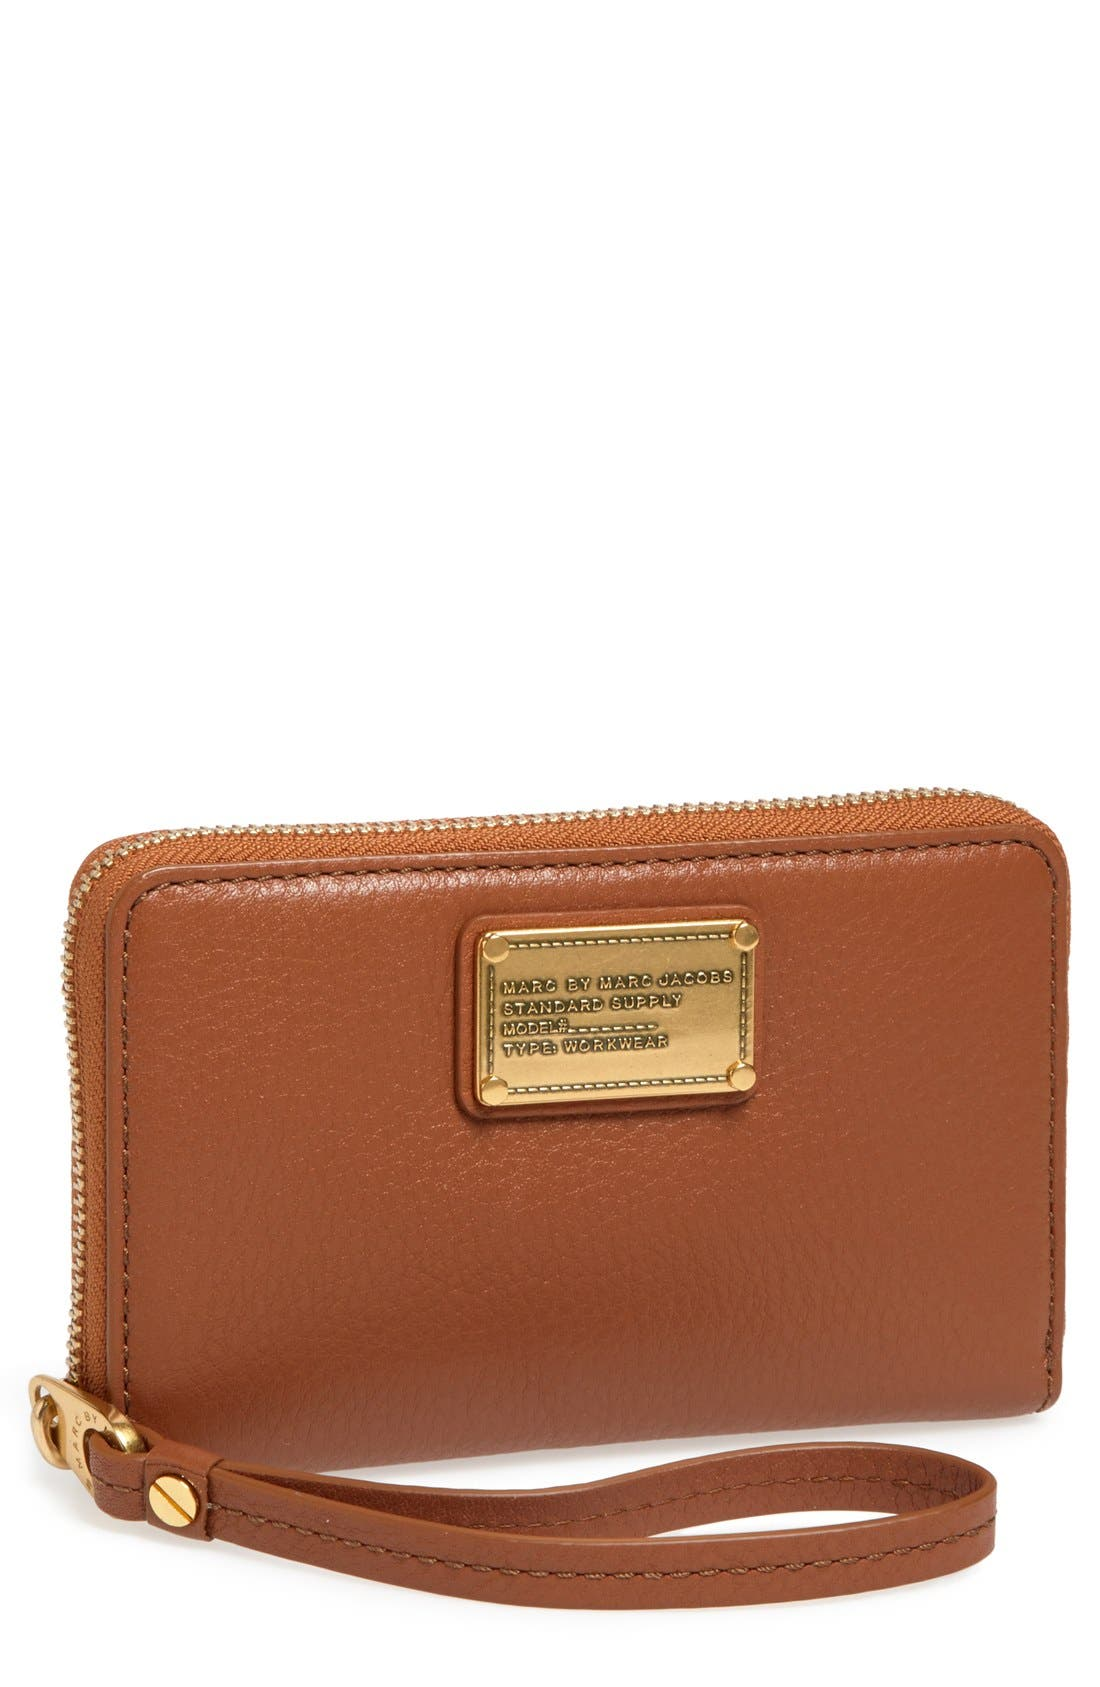 Alternate Image 1 Selected - MARC BY MARC JACOBS 'Classic Q Mildred' Wristlet Wallet